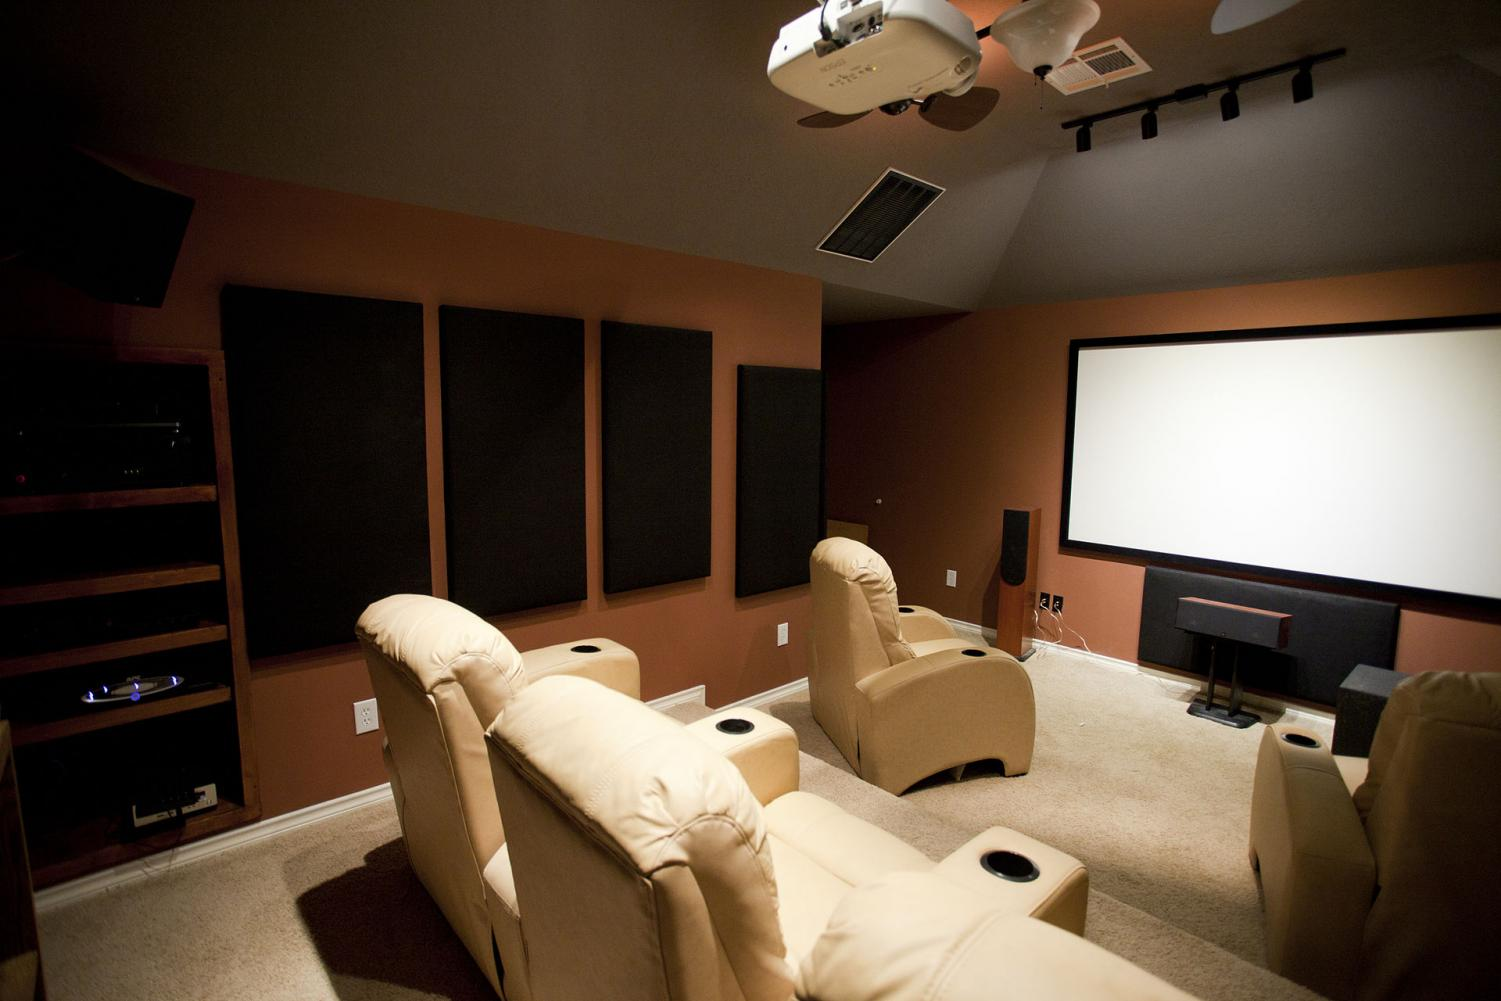 Watch a foreign film in the comfort of your own home